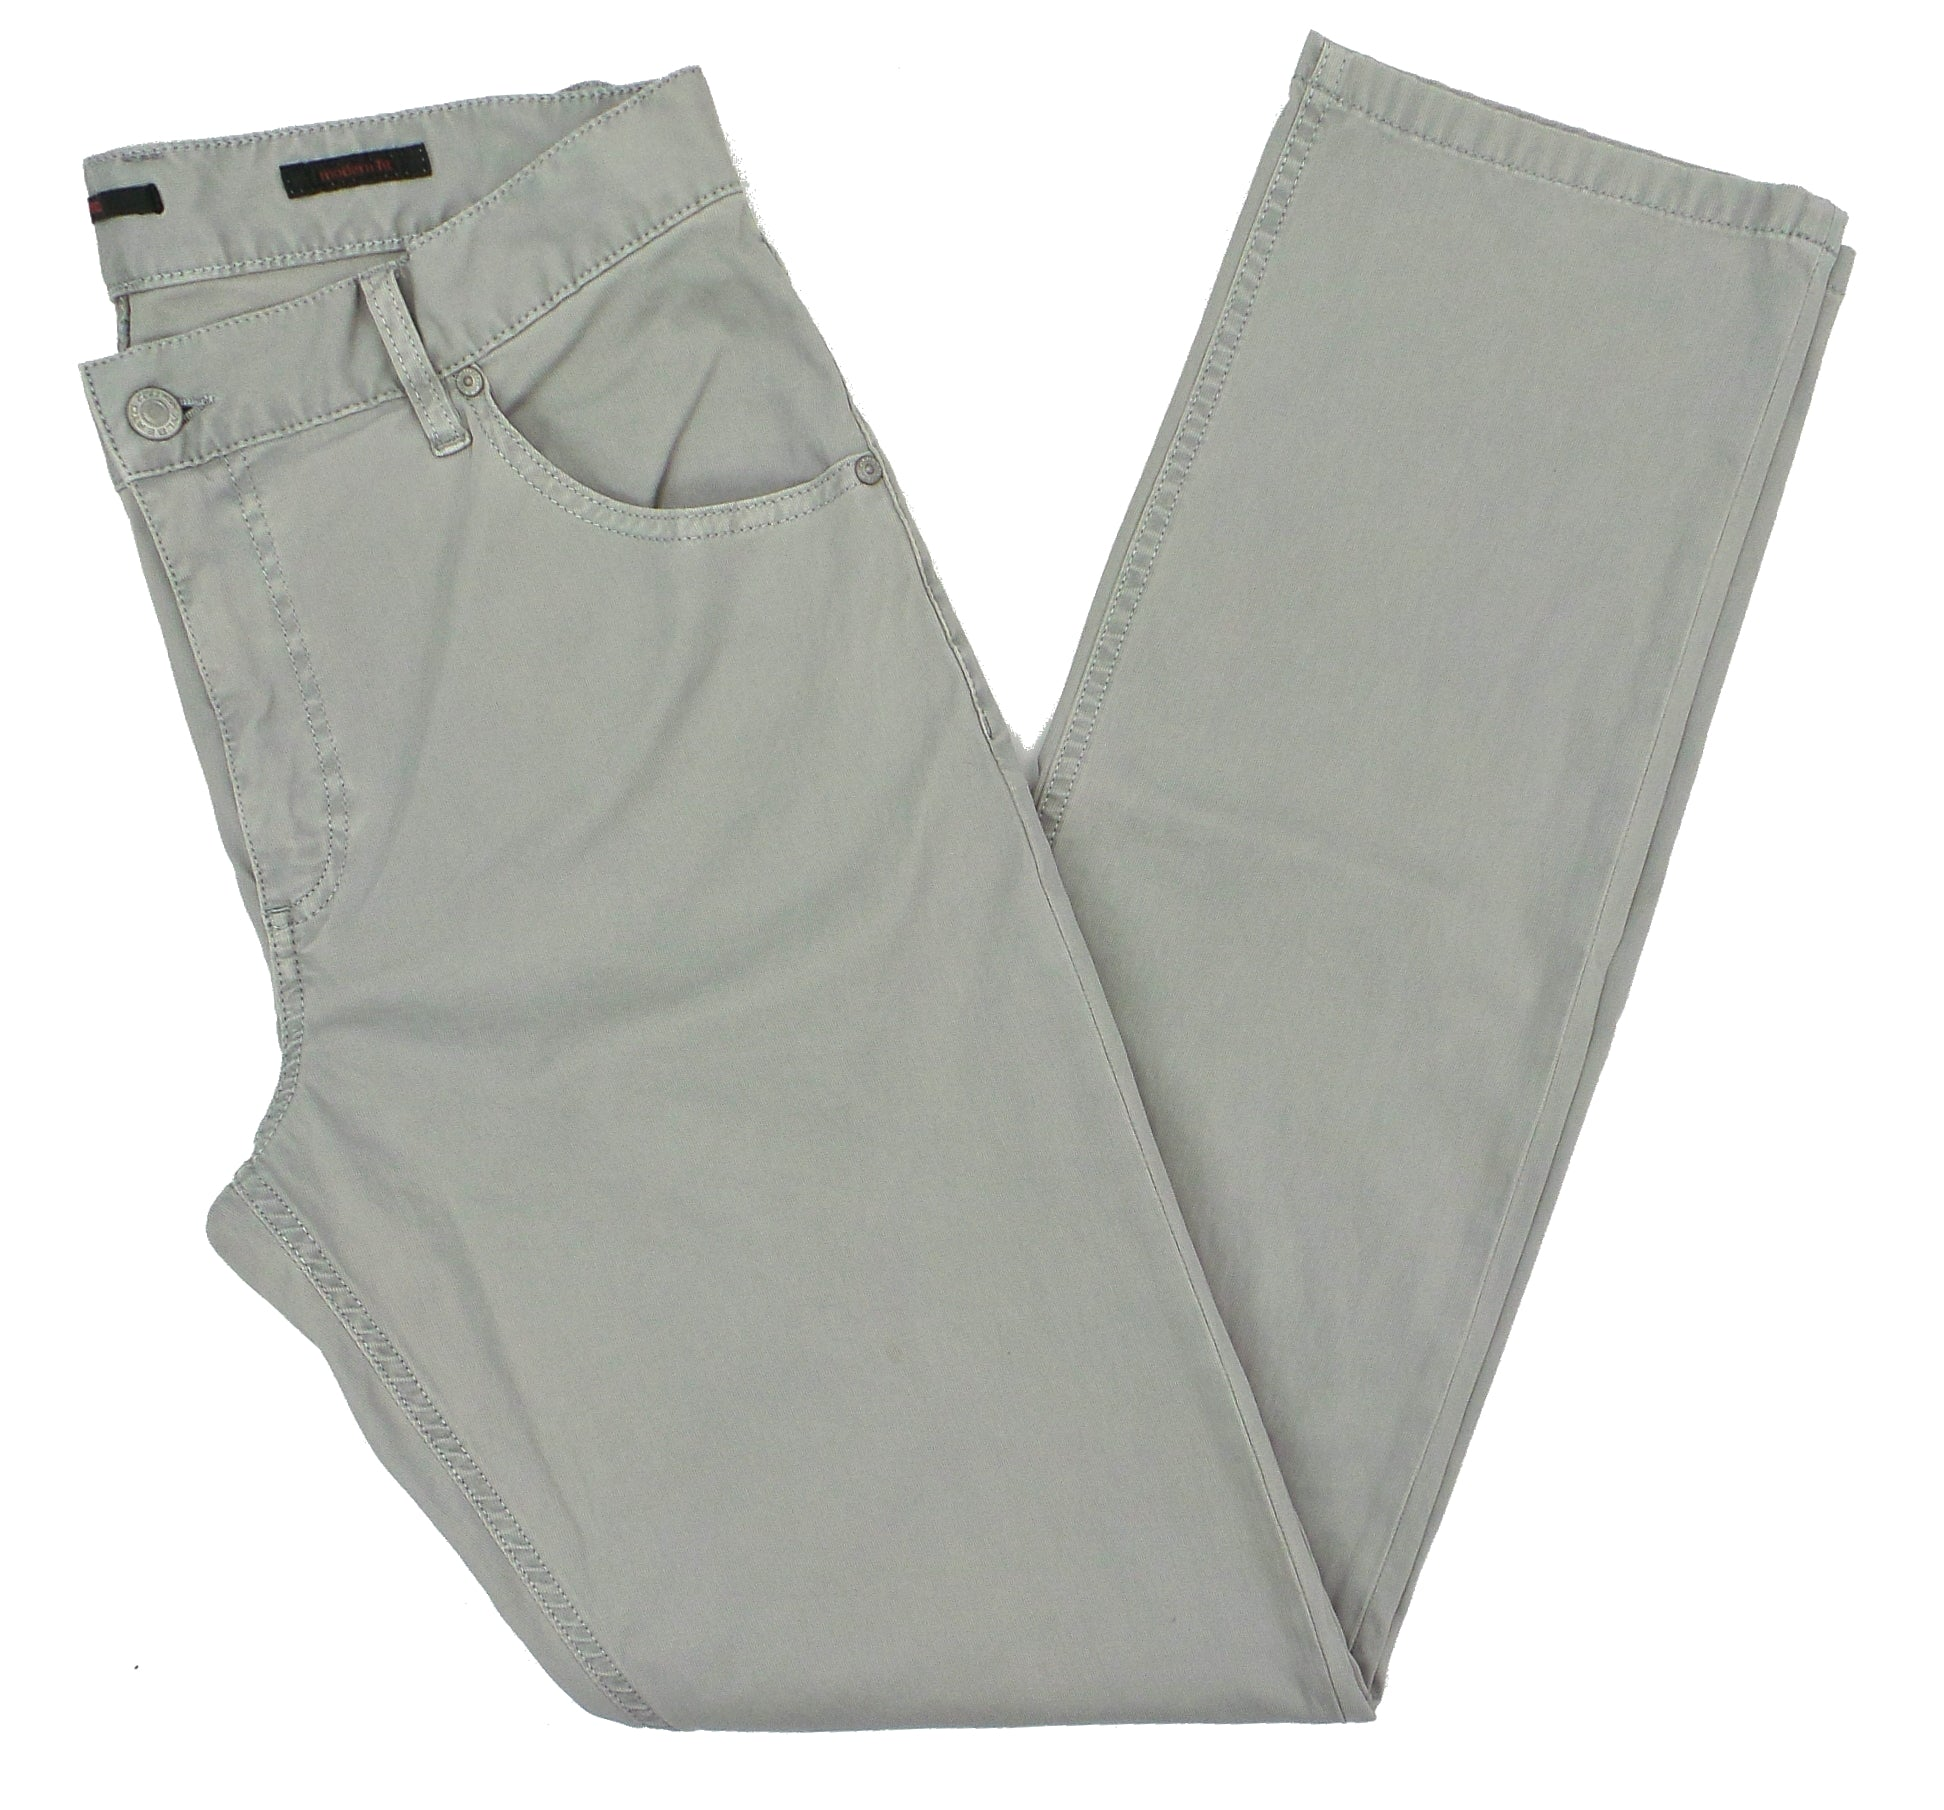 Alberto Stone 1910 Modern Fit Dynamic Superfit Cotele Soft Cotton Pants